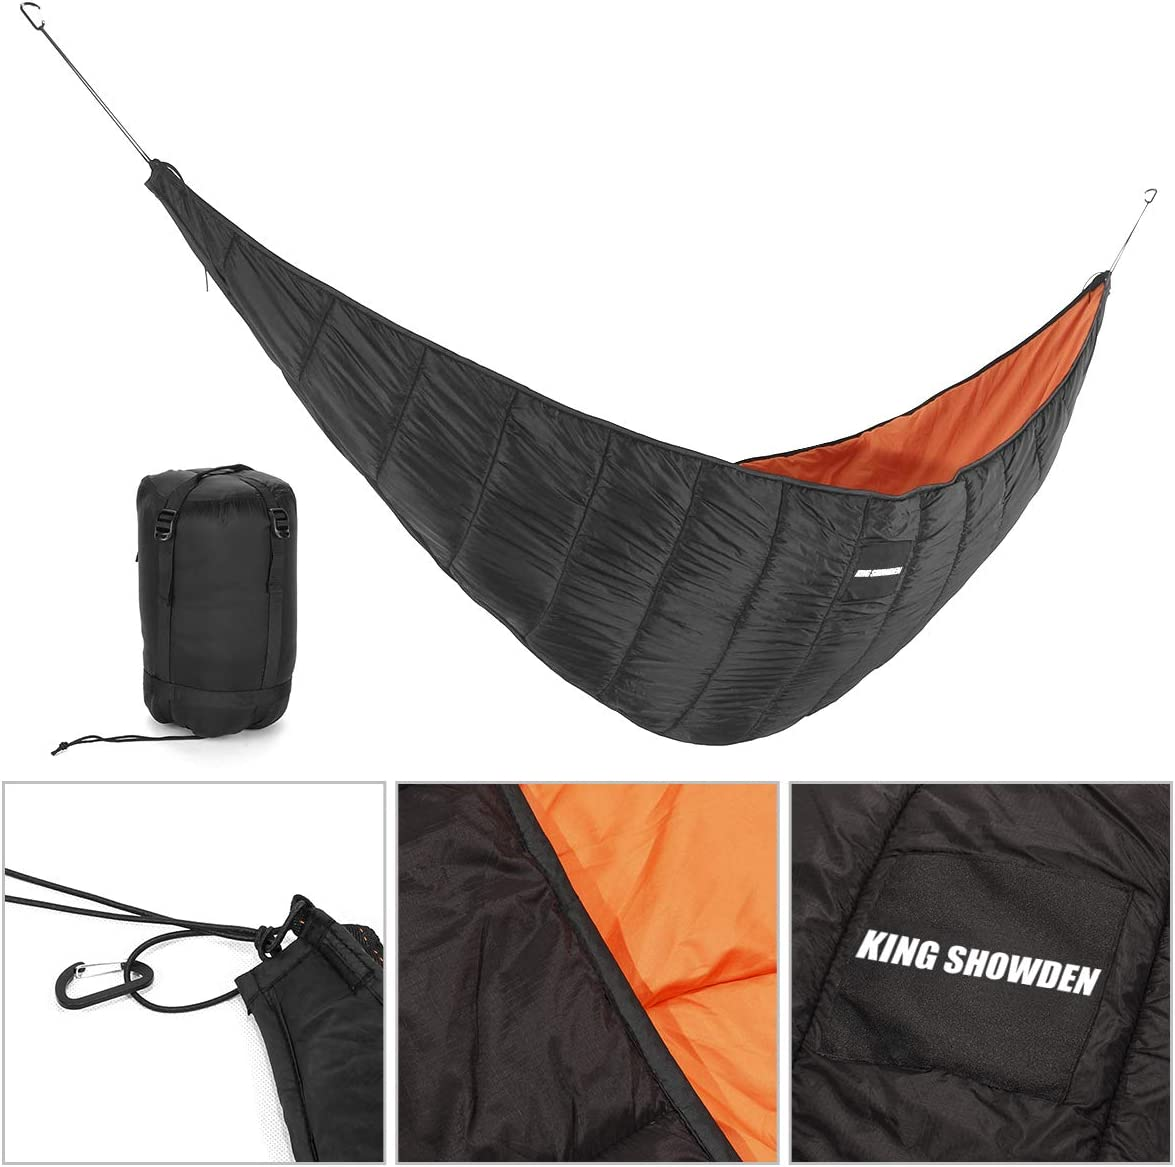 Snugpak Hammock Quilt, Insulated Thermal Top Cover for Outdoor Camping